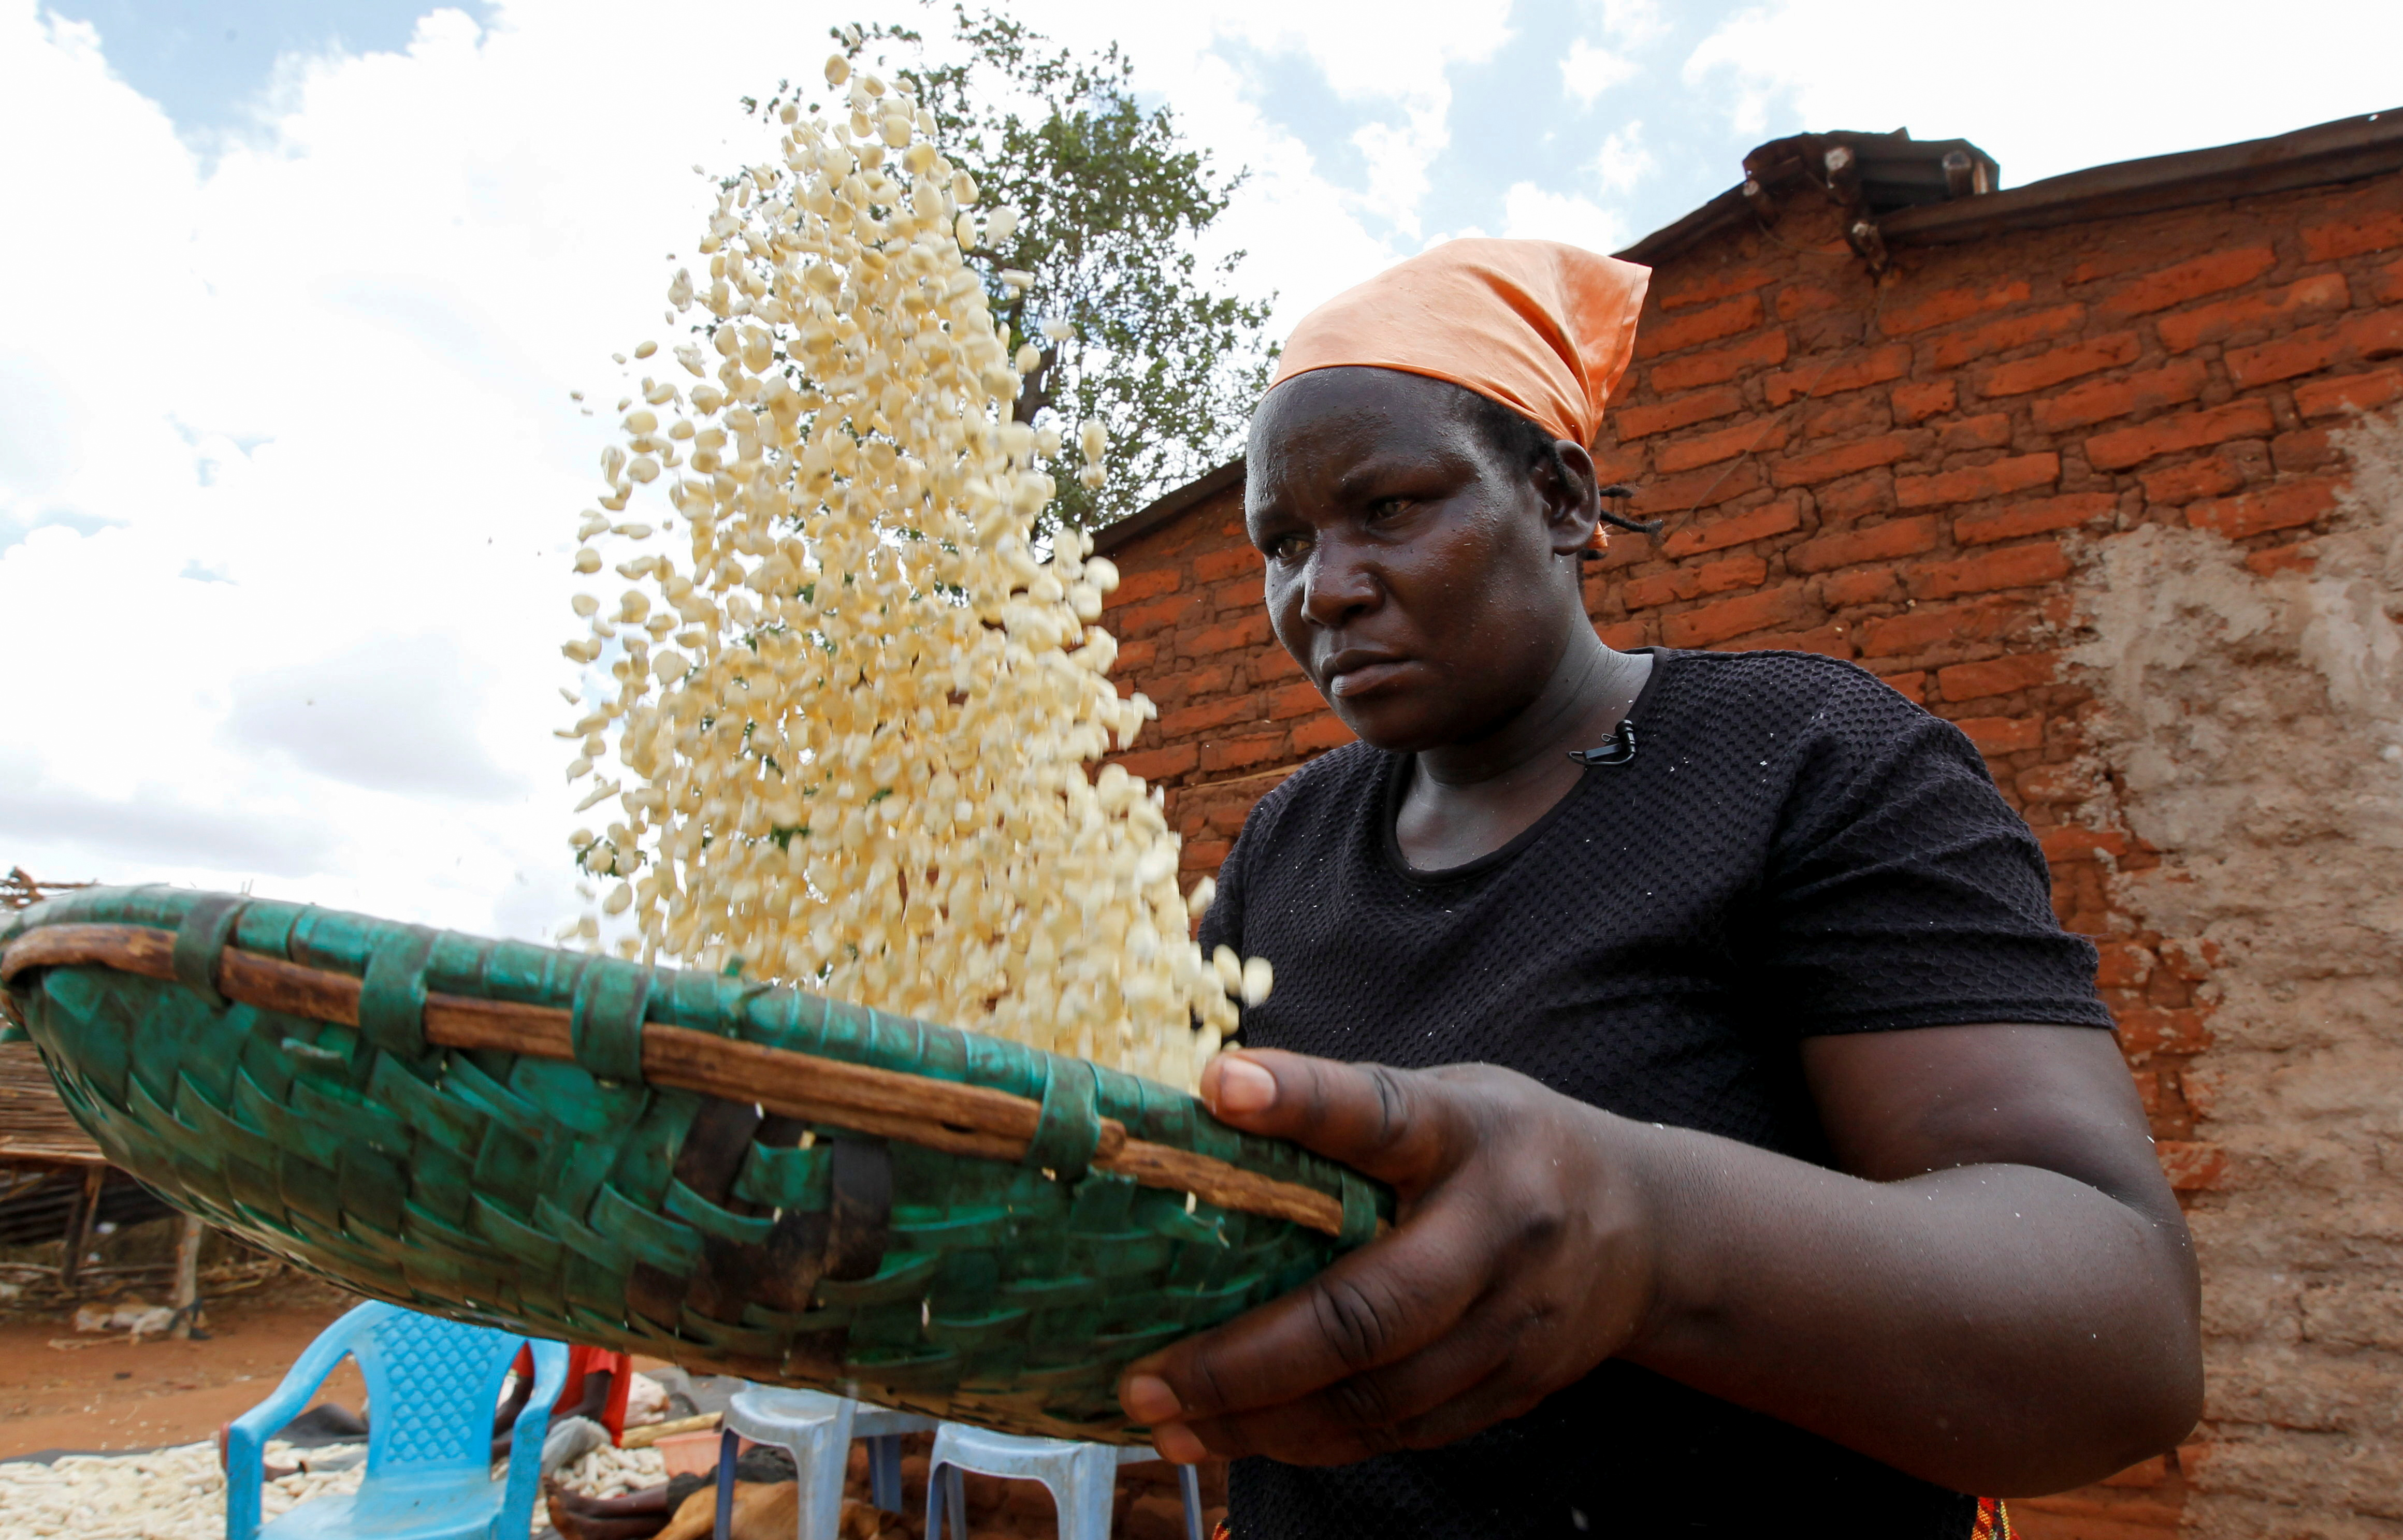 Waki Munyalo winnows maize collected from her harvest insured by Pula, an agricultural insurance company which helps small-scale farmers manage the risk associated with extreme climate conditions, in Kitui county, Kenya, March 17, 2021. Picture taken March 17, 2021. REUTERS/Monicah Mwangi